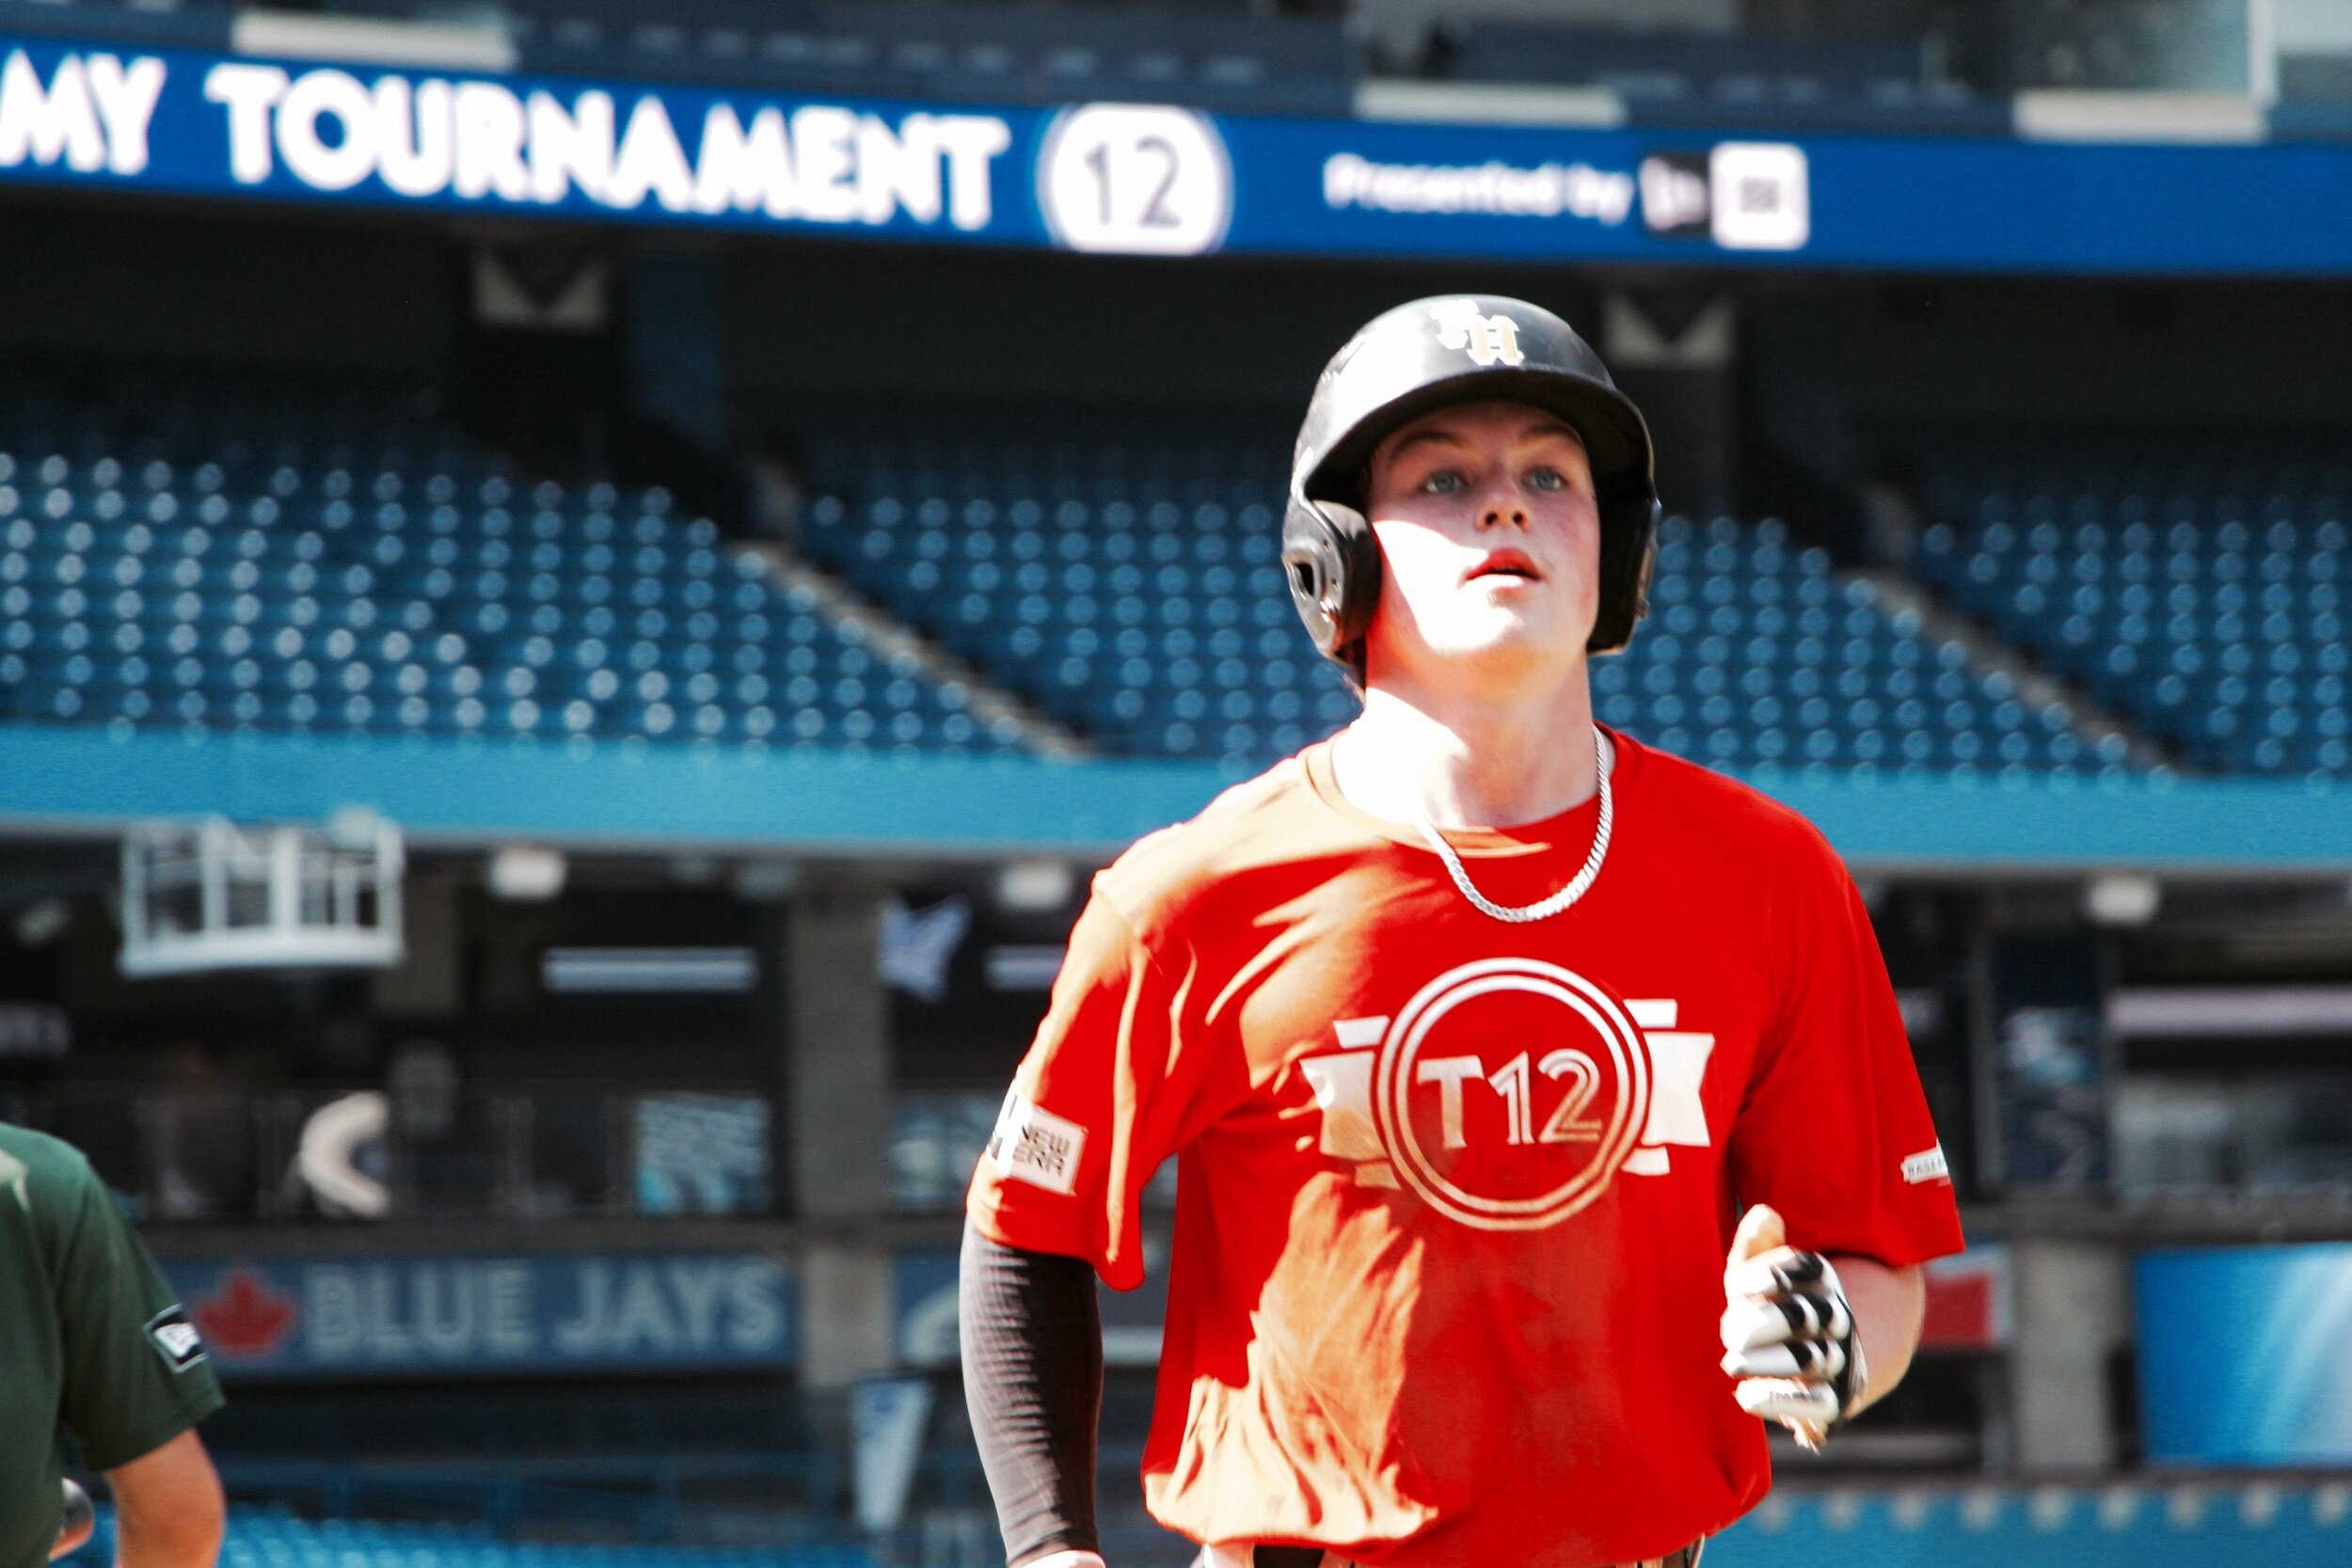 Fieldhouse Pirates SS Bryce Arnold (Grimsby, Ont.) scored the only run for Team Sandy Alomar Sr. in the Prospects Game, hitting a triple in the first inning before coming in to score on a single by fellow Fieldhouse Pirate Owen Caissie (Burlington, Ont.). Photo: Tyler King